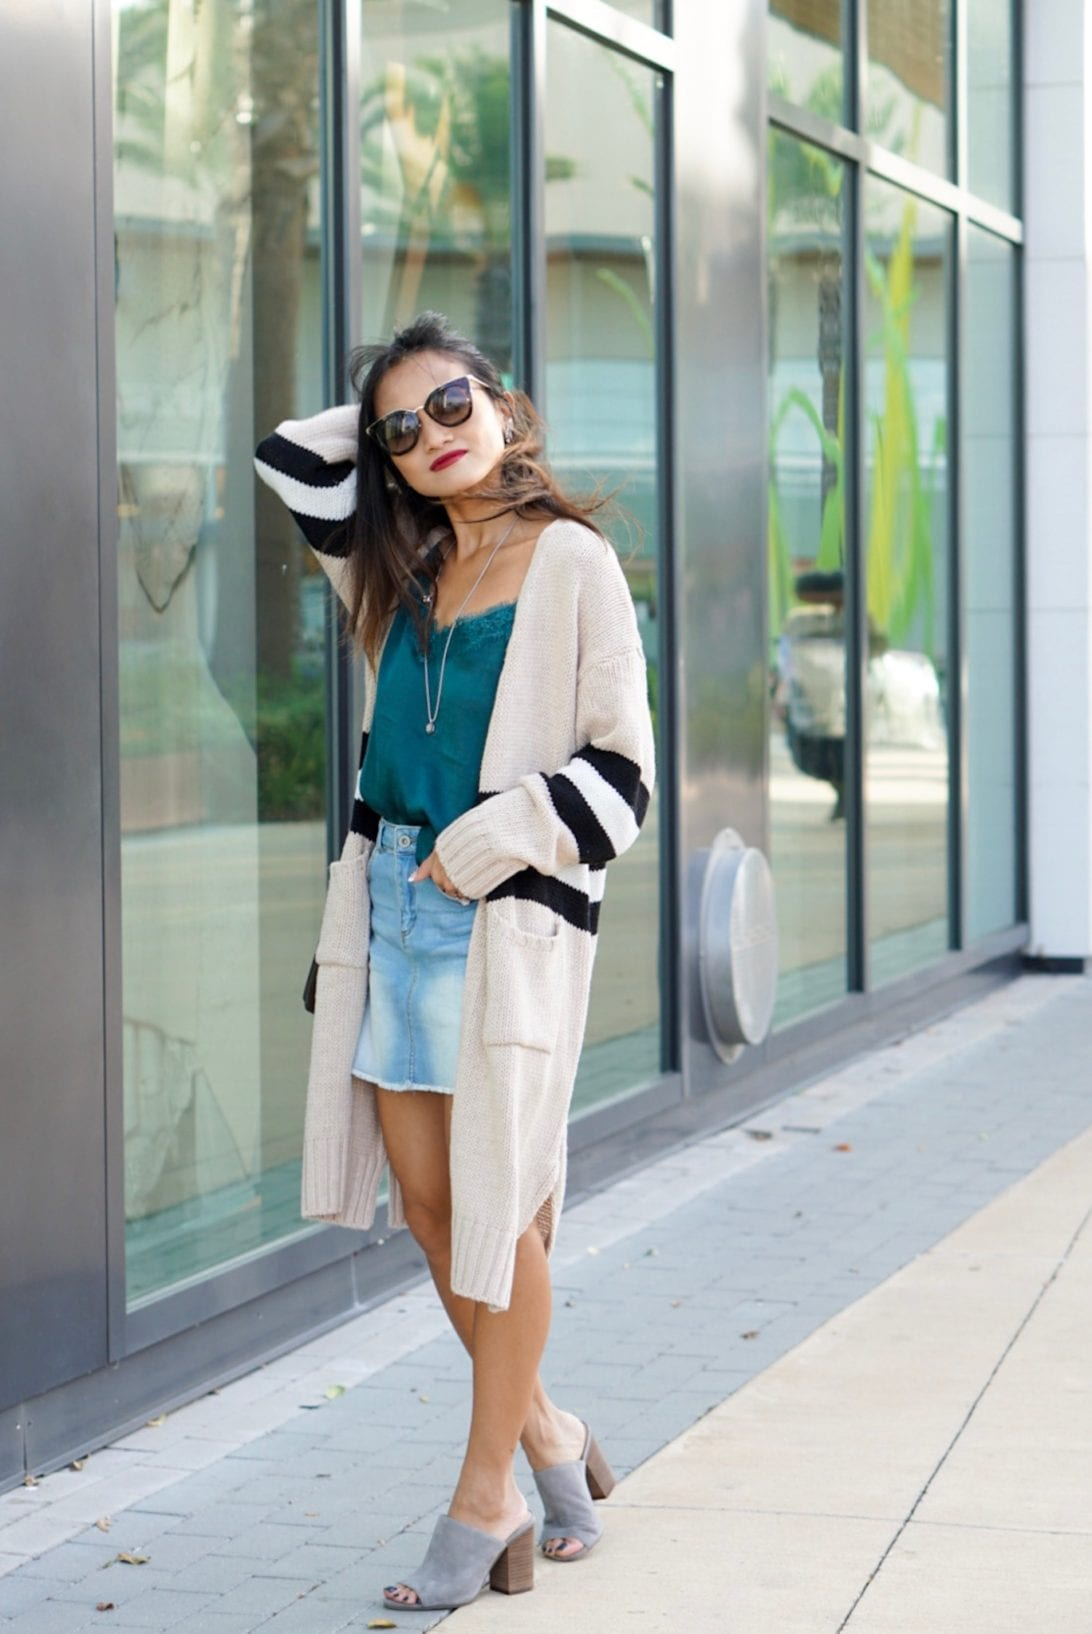 what to wear after Labor Day, transitioning from summer to fall wardrobe, what to wear in the fall, fall outfit, oversized cardigan, denim skirt, summer outfit, Prada glasses, camisole, slides, grey slides, Nordstrom, goodnight macaroon, daniel Wellington watch